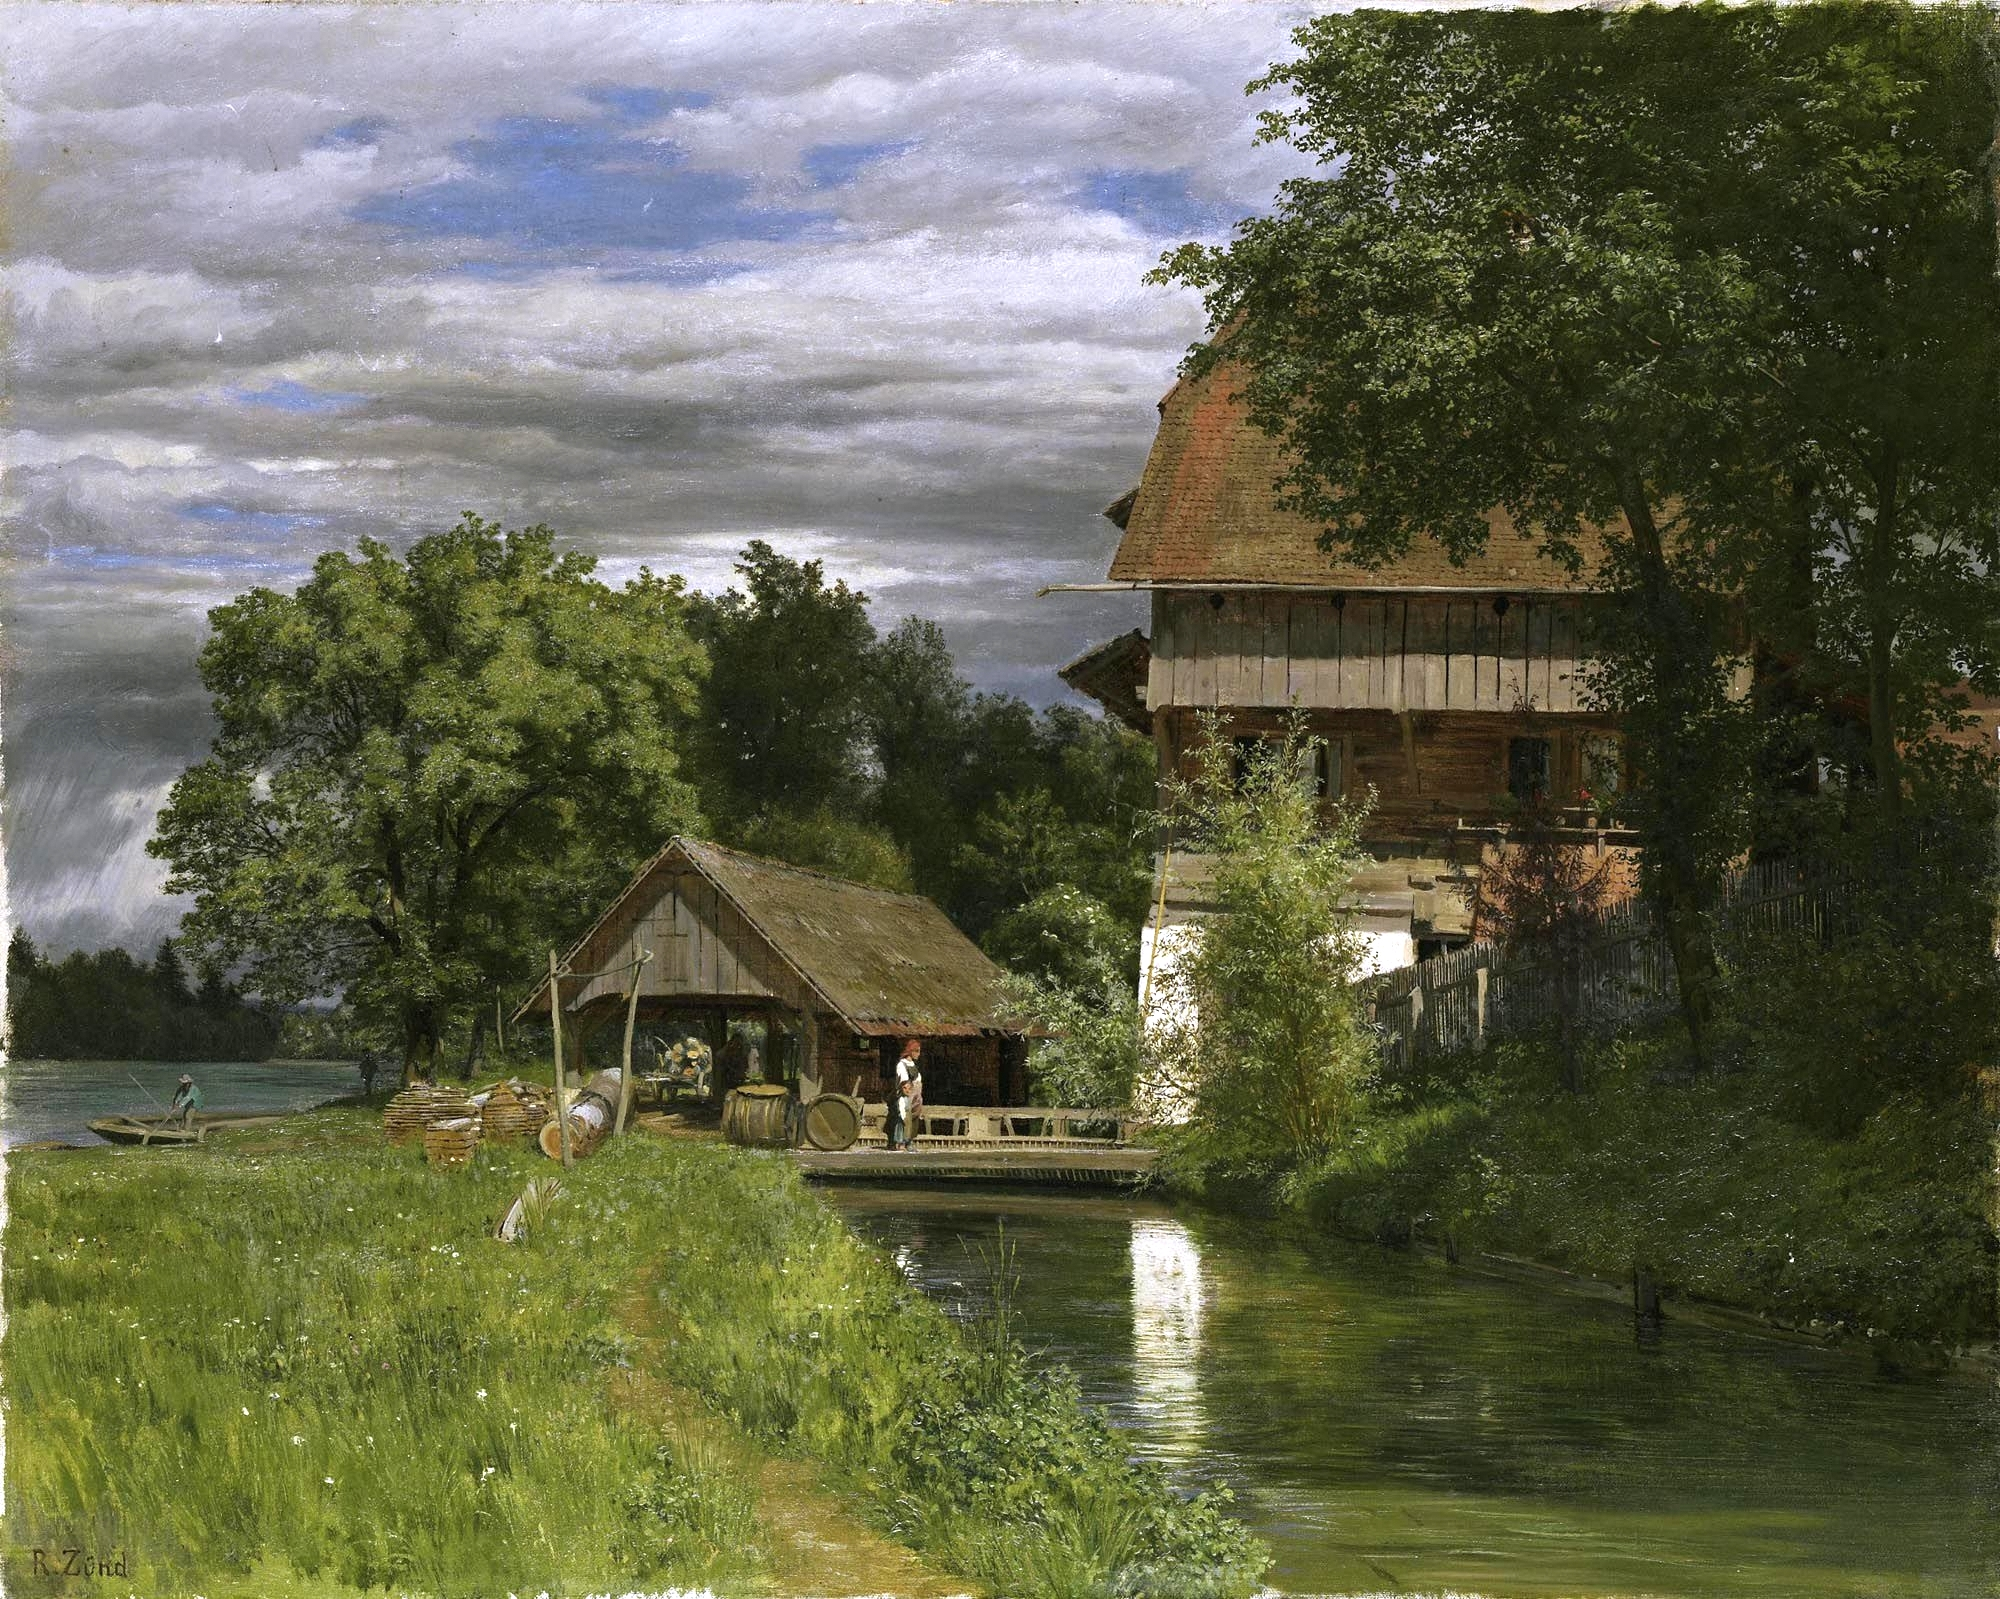 Robert Zünd – private collection.  Title: Die Mühle von Rathausen. Date: c. 1850-1900. Materials: oil on canvas. Dimensions: 45.5 x 56.5 cm. Source: http://media.mutualart.com/Images/2009_07/25/0305/681705/5df57720-5e97-48e4-a9f5-b0df8b11eeb7_g.Jpeg. I have changed the contras of the original photo